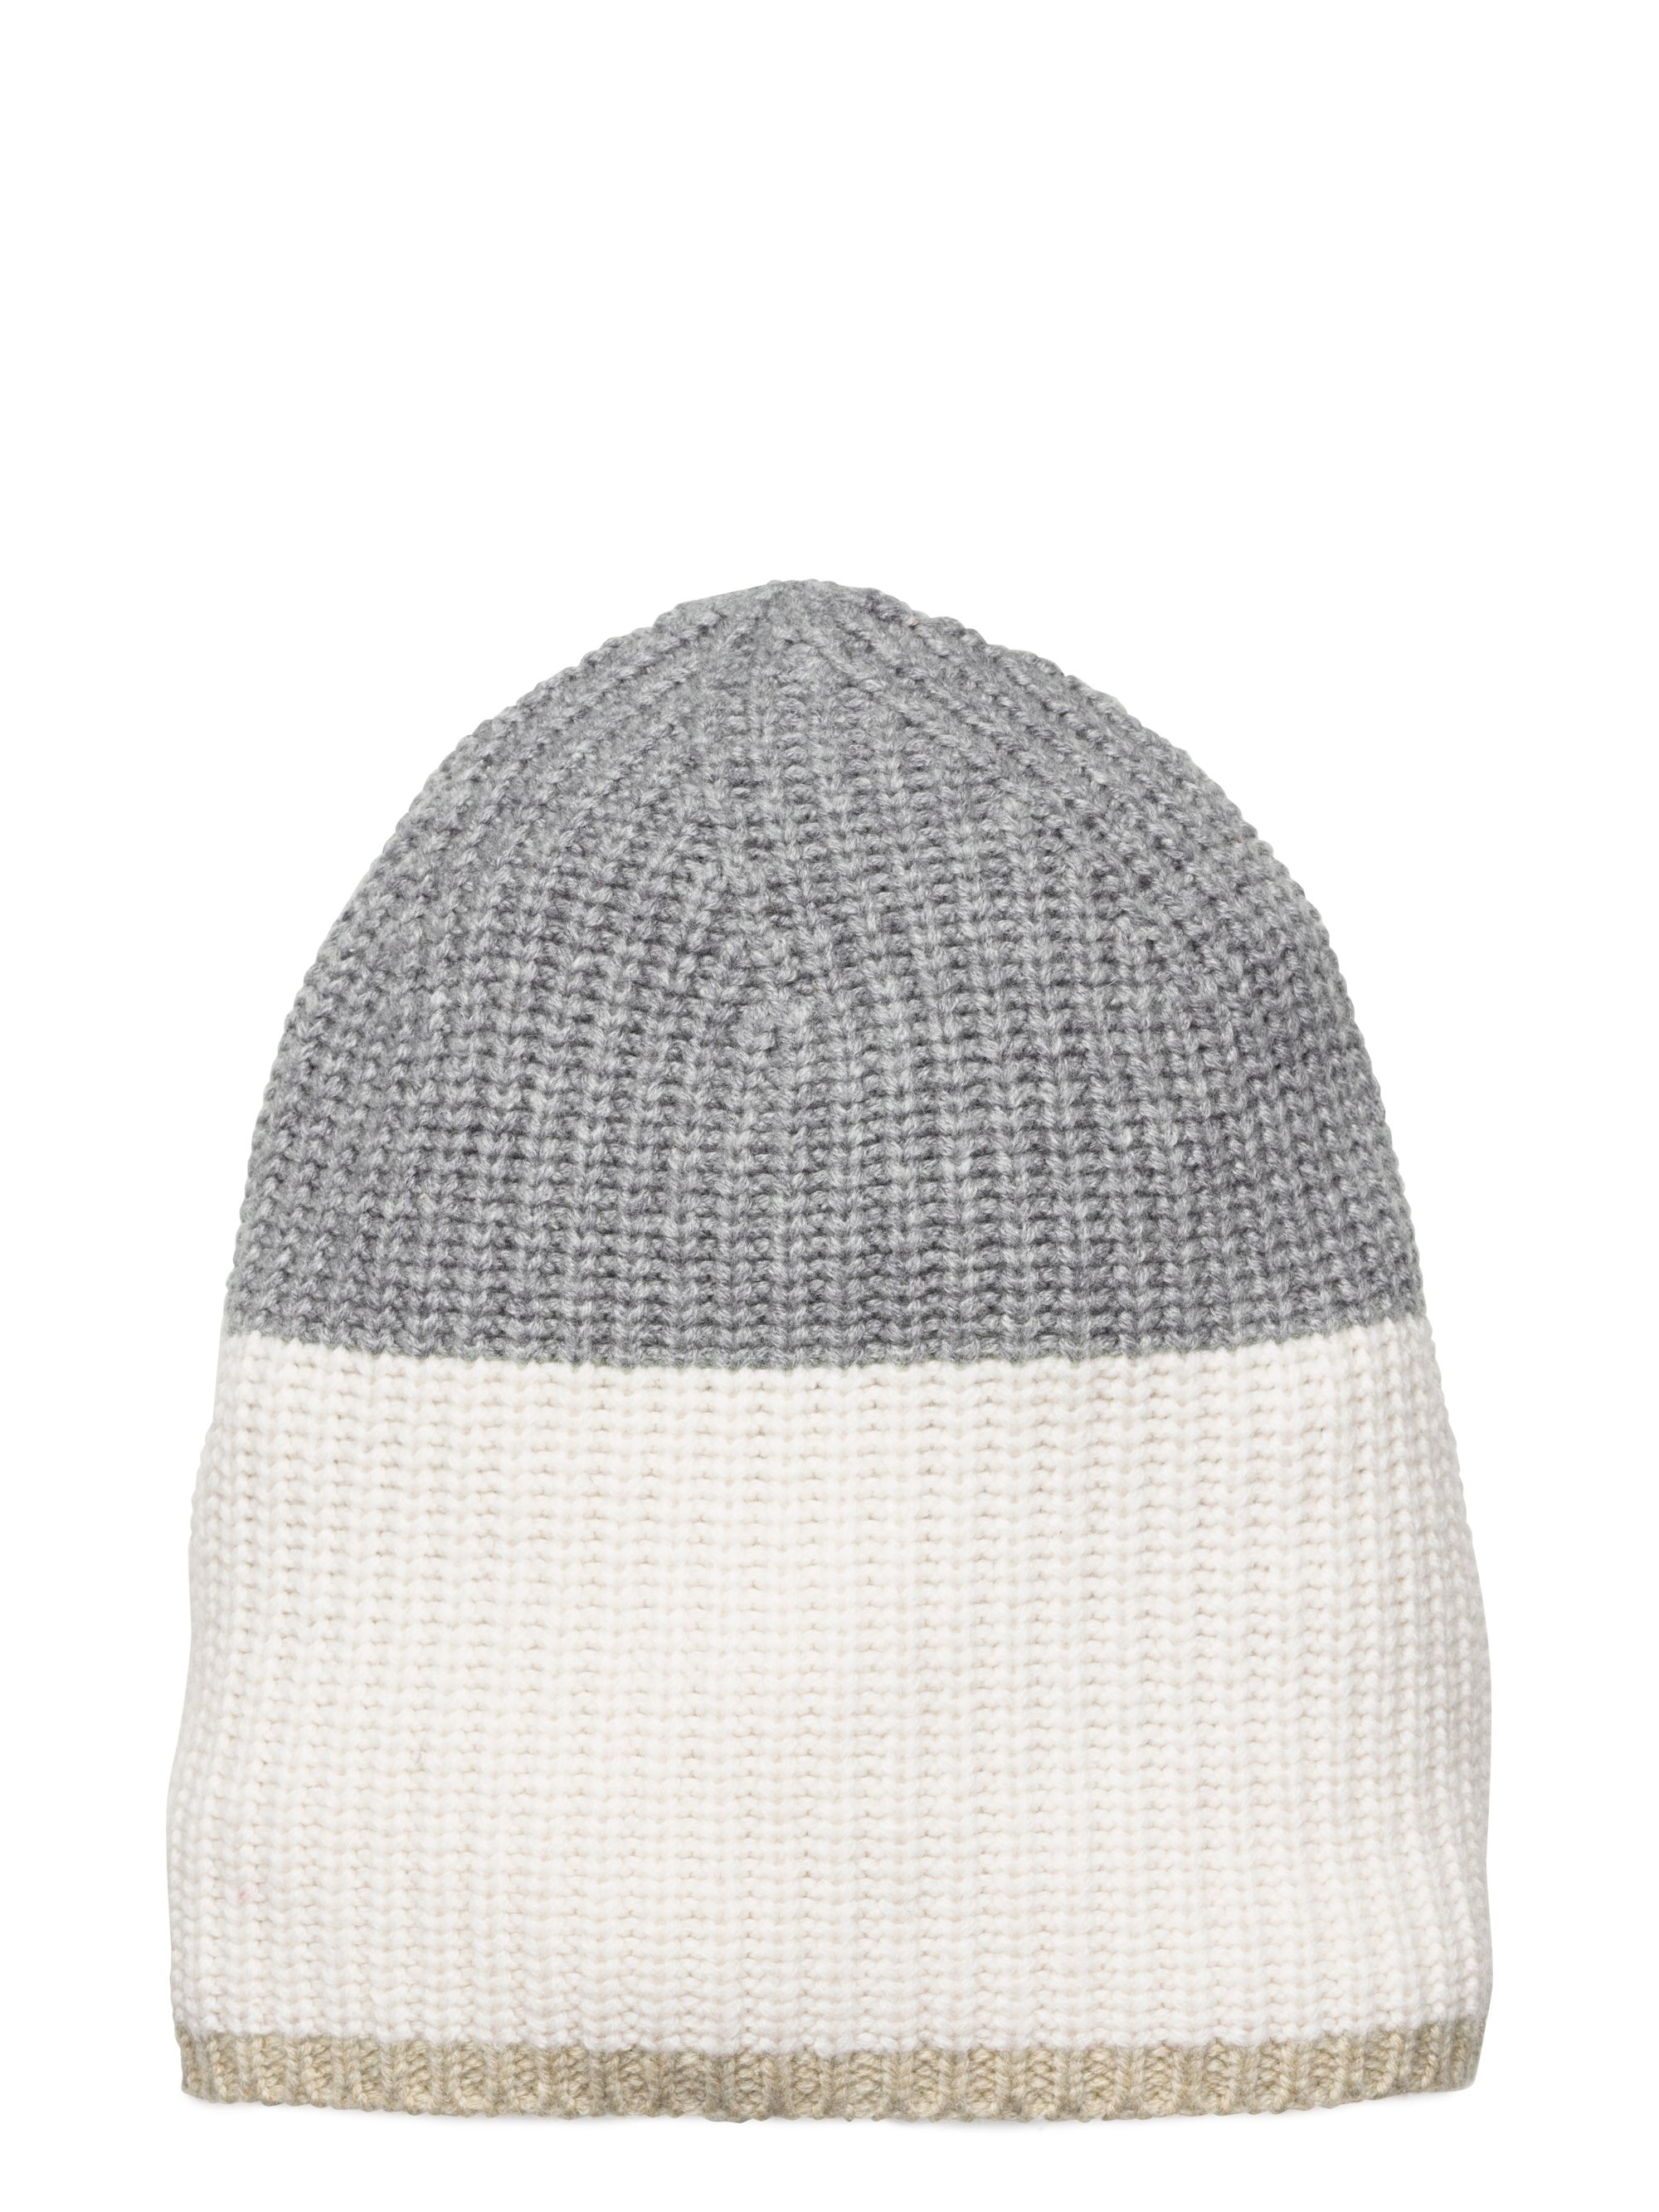 ee3636cc593 Lyst - Kate Spade Zip Up Beanie in Natural